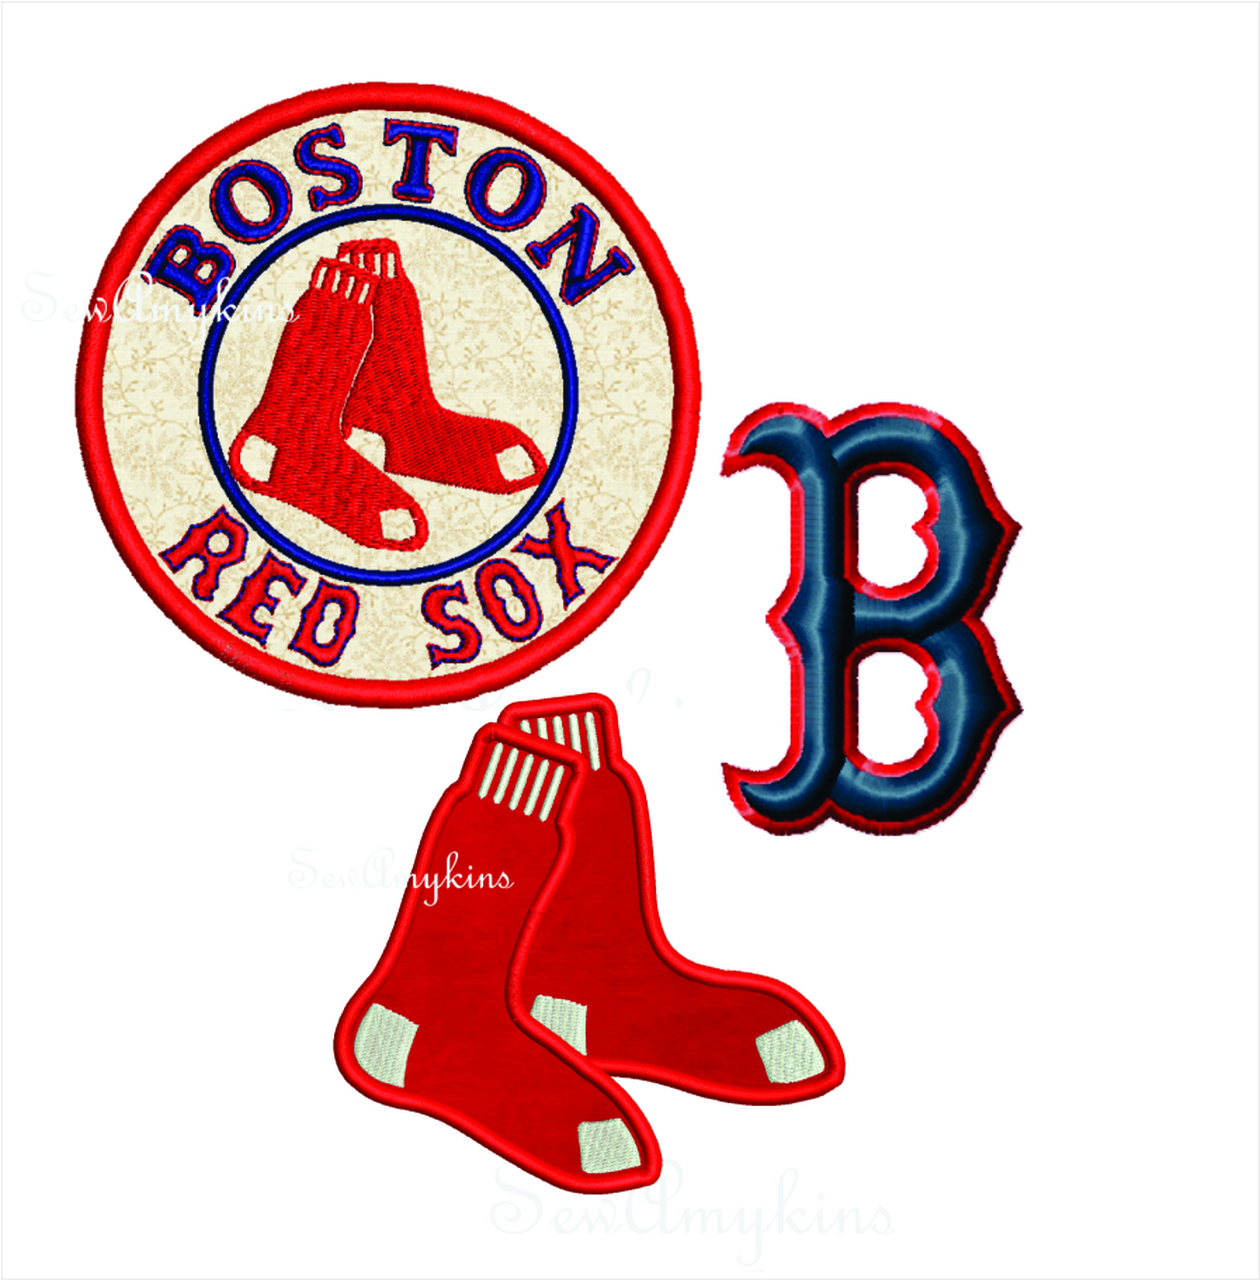 Boston Red Sox baseball ball applique & satin stitch socks machine  embroidery designs logo 6 files.